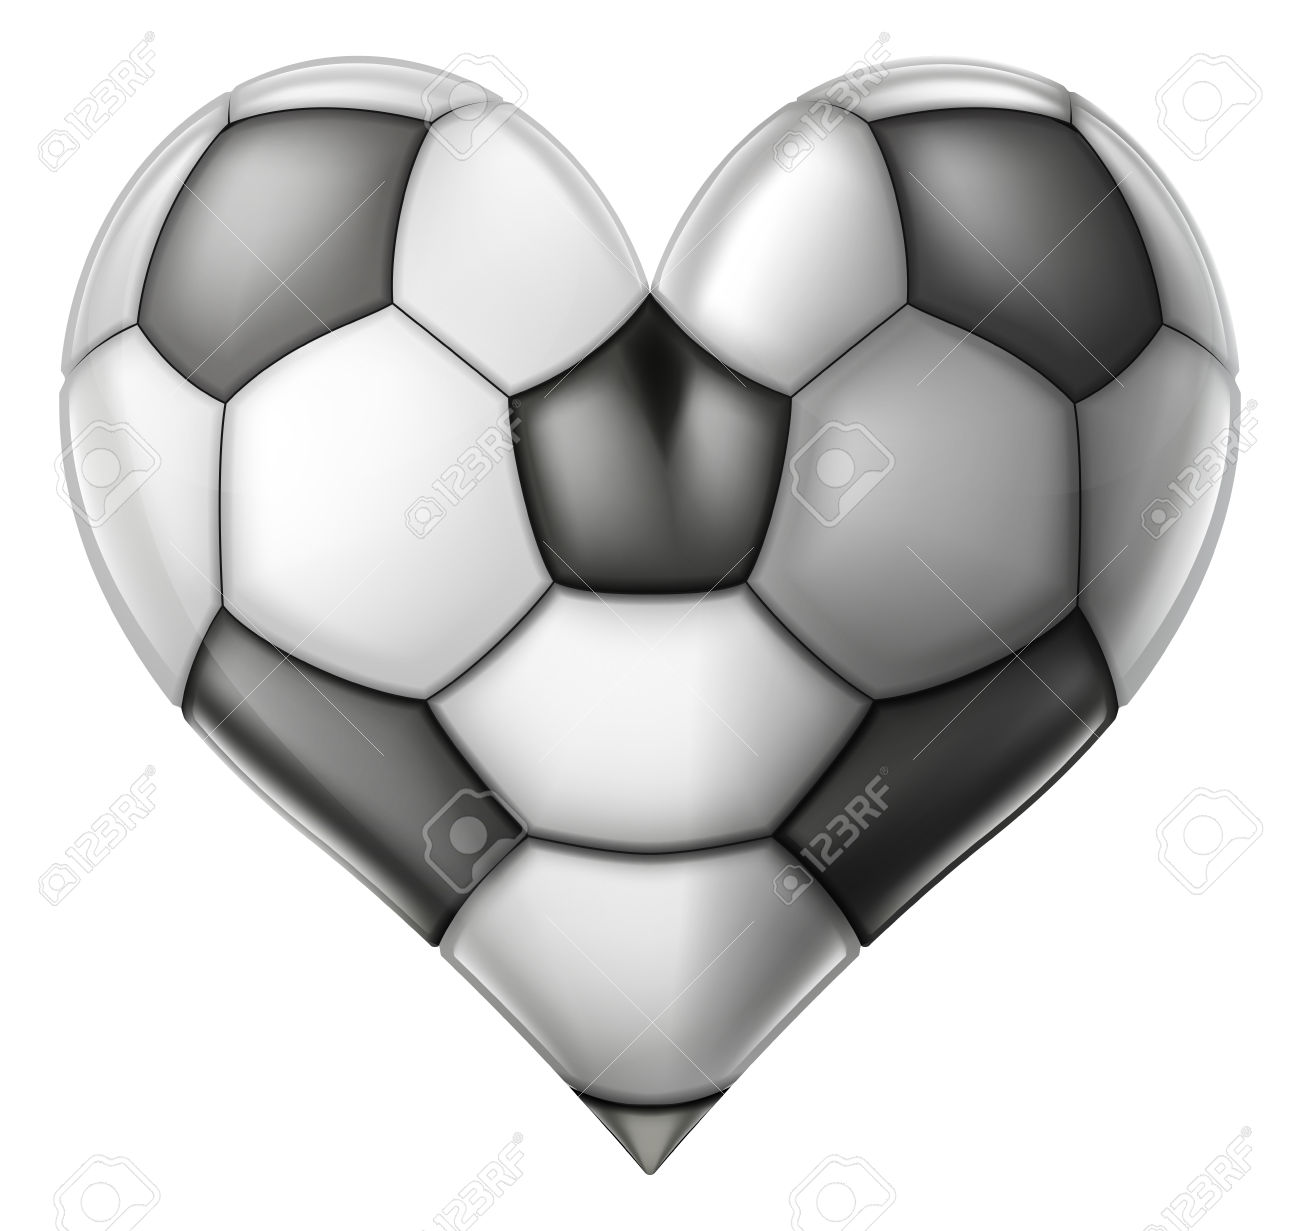 A Soccer Or Football Ball Heart, Conceptual Illustration For.